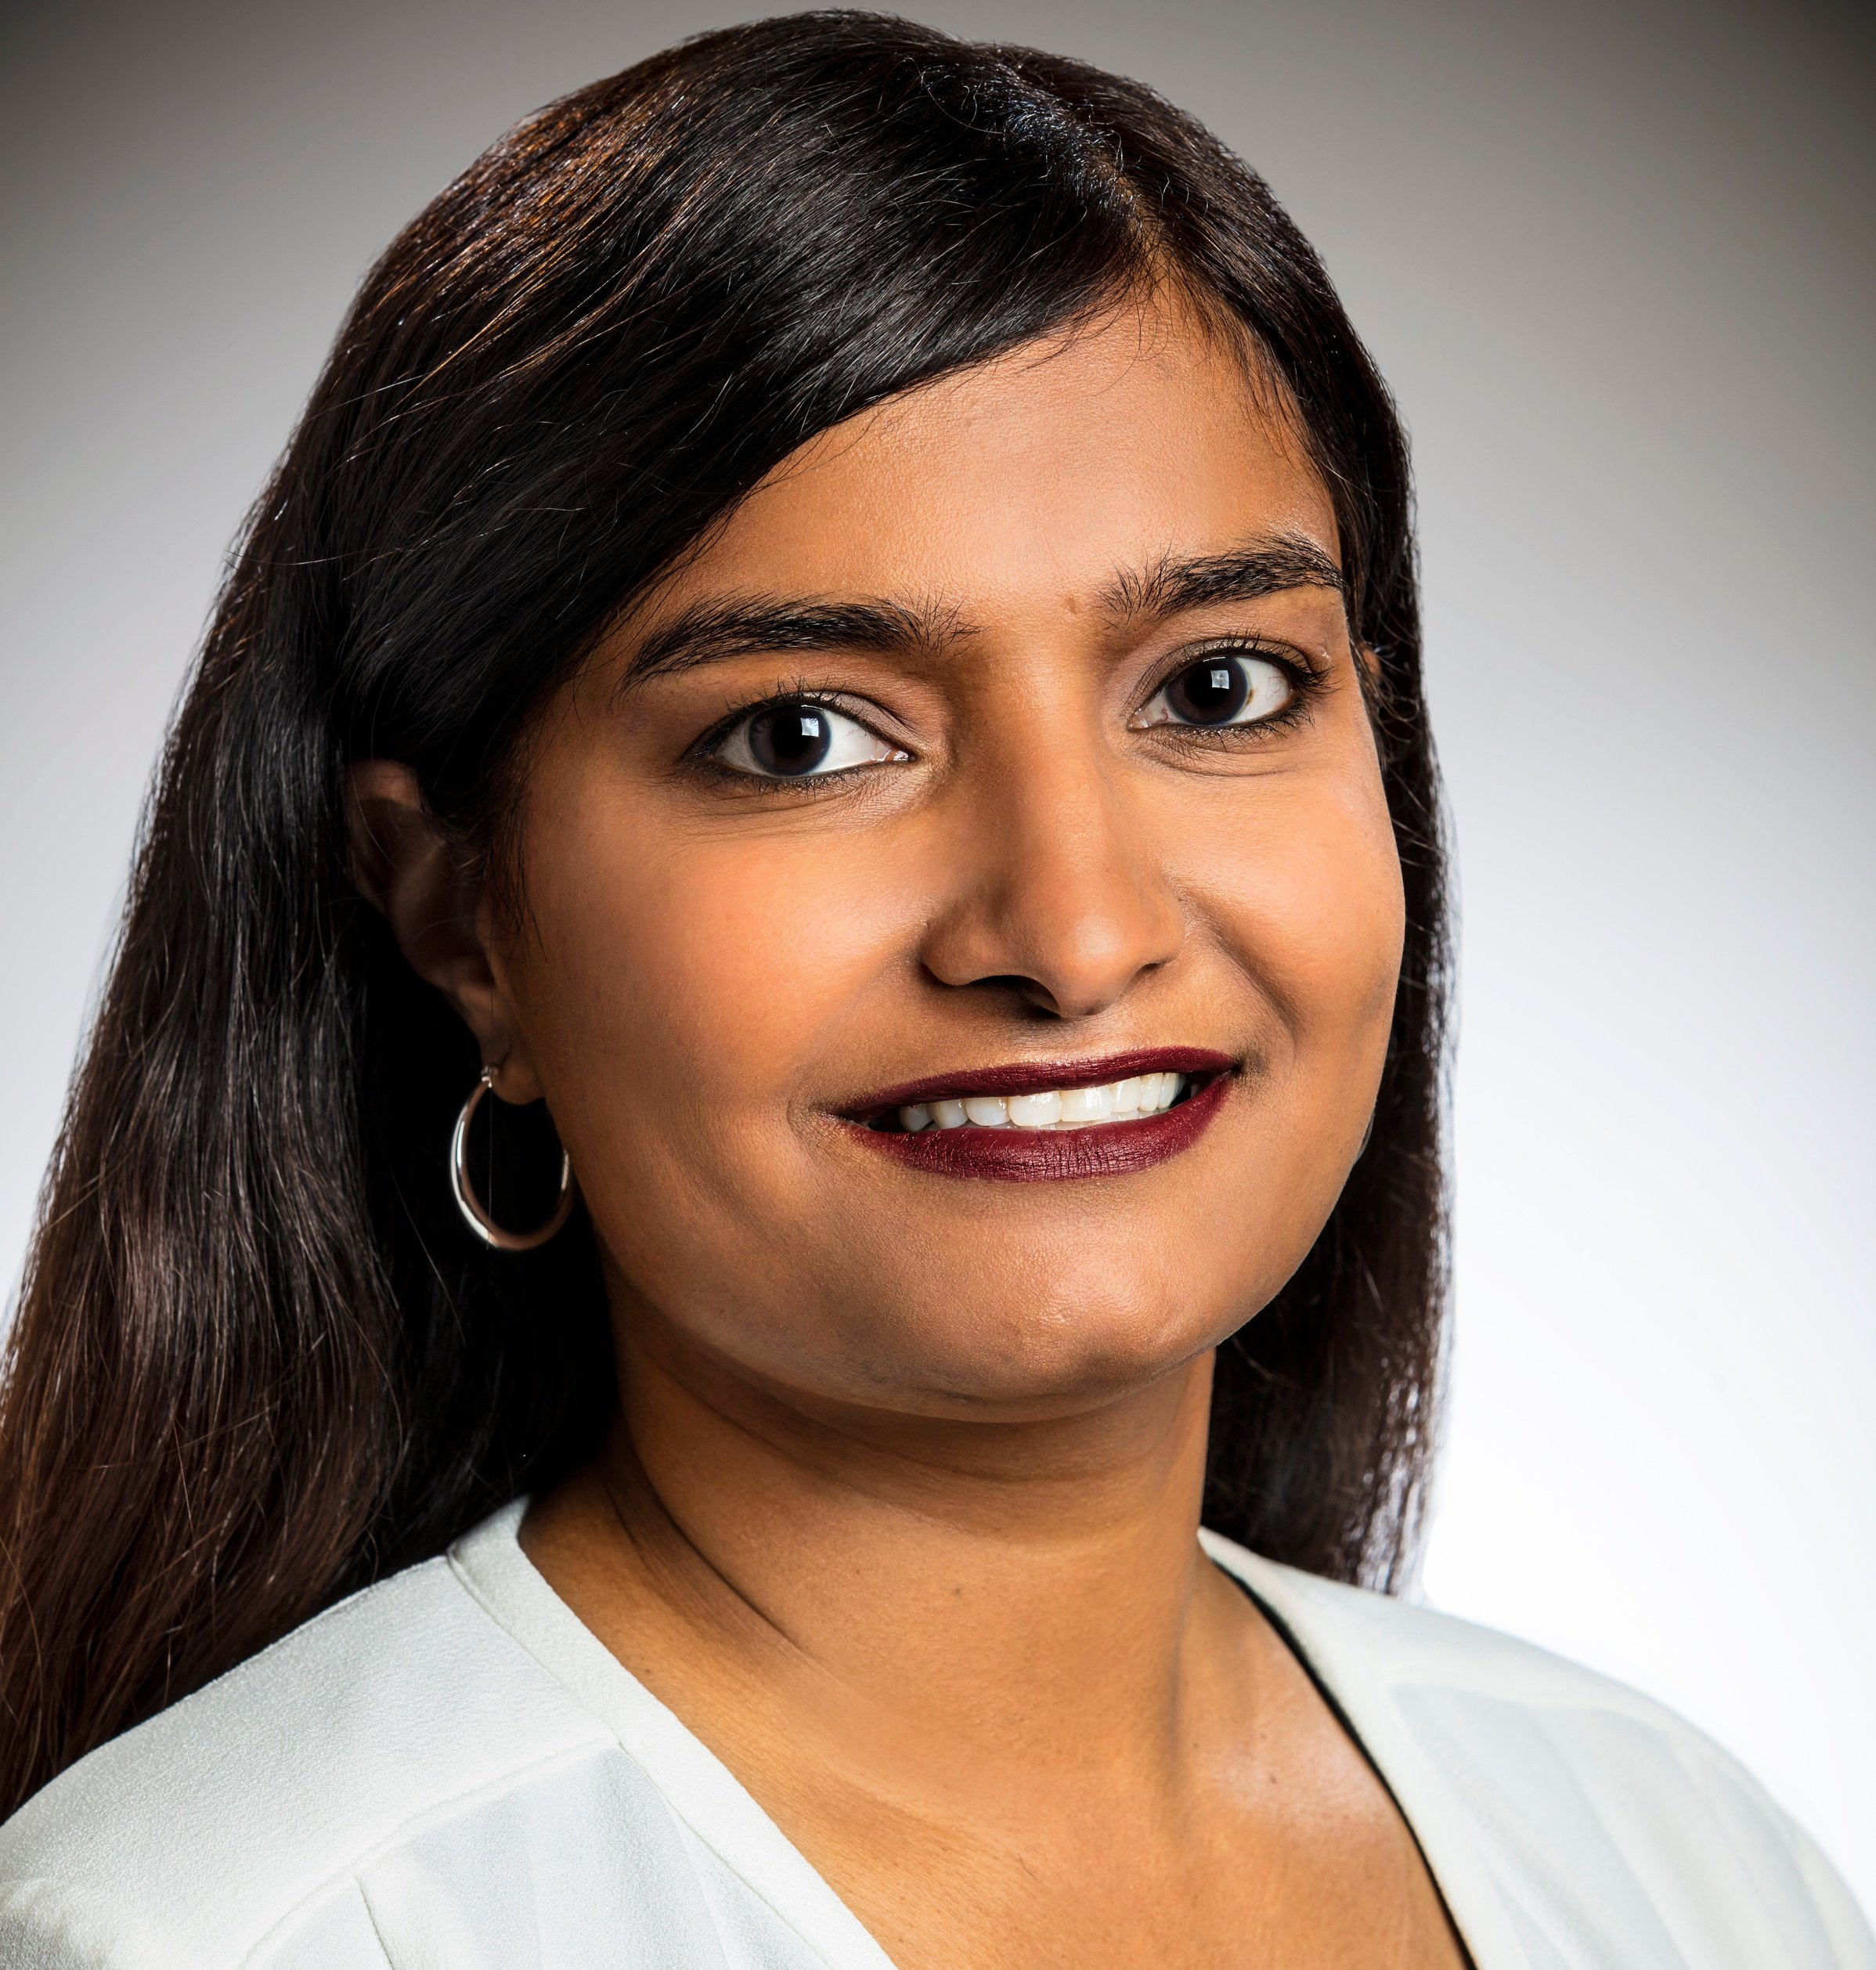 Kruti McDonald - Physicians Assistant, Montclair Breast Center